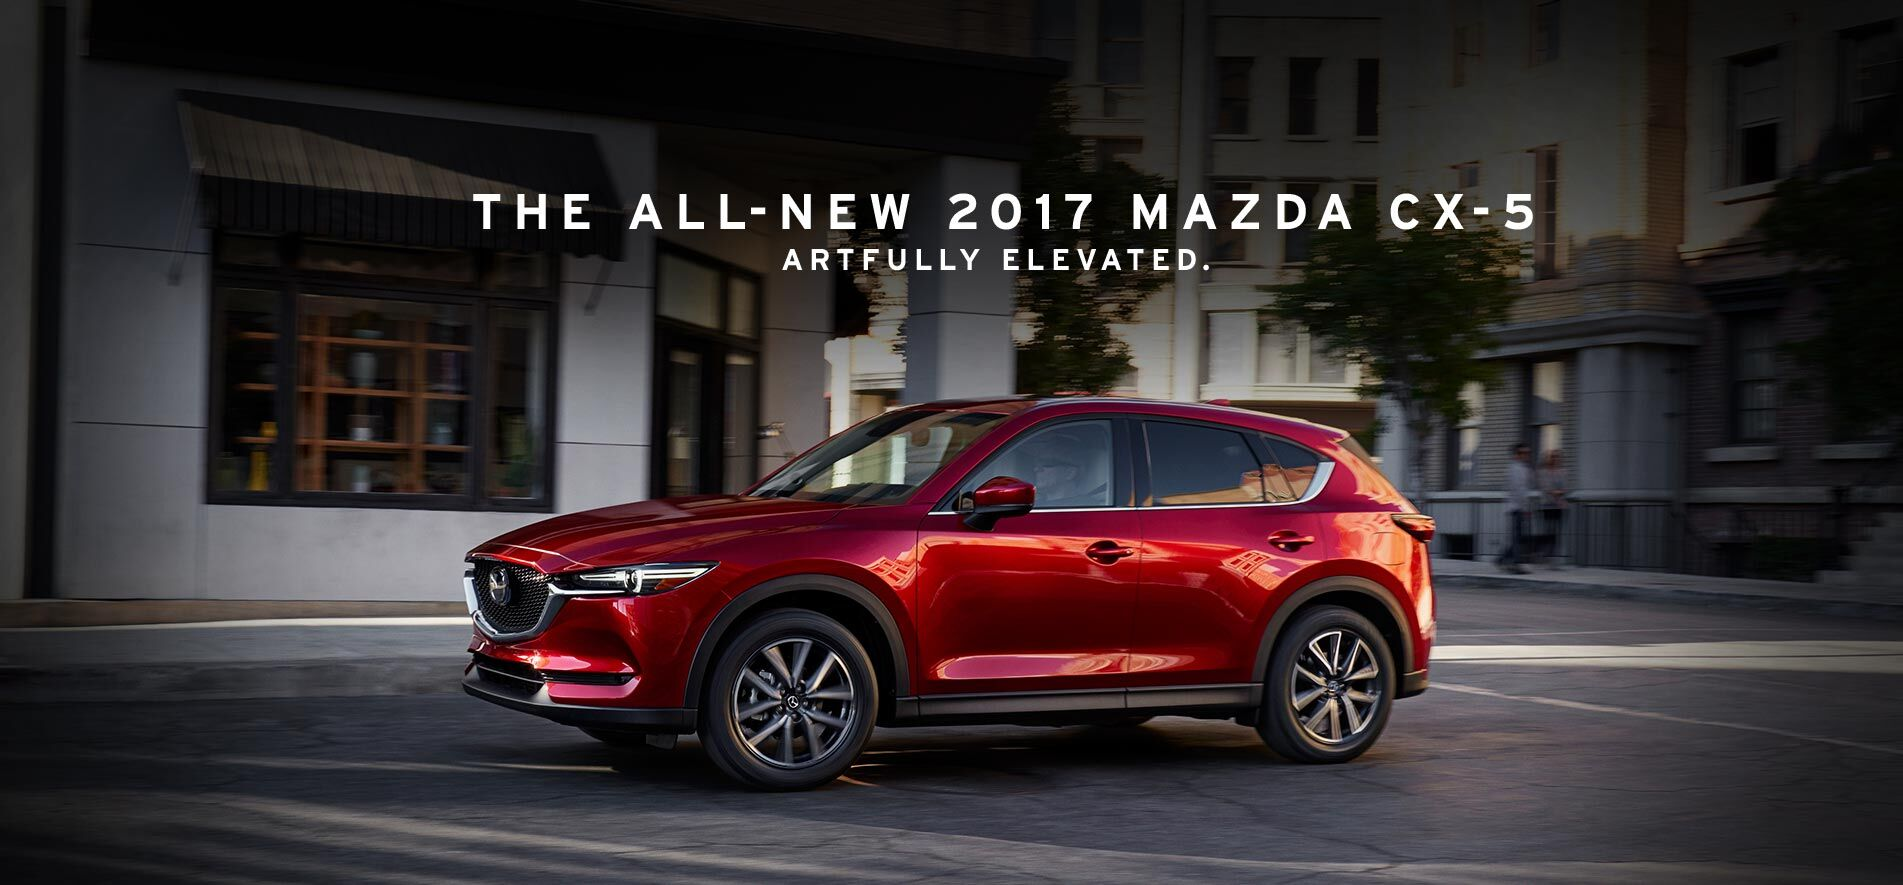 2017 Mazda CX-5 is here!!